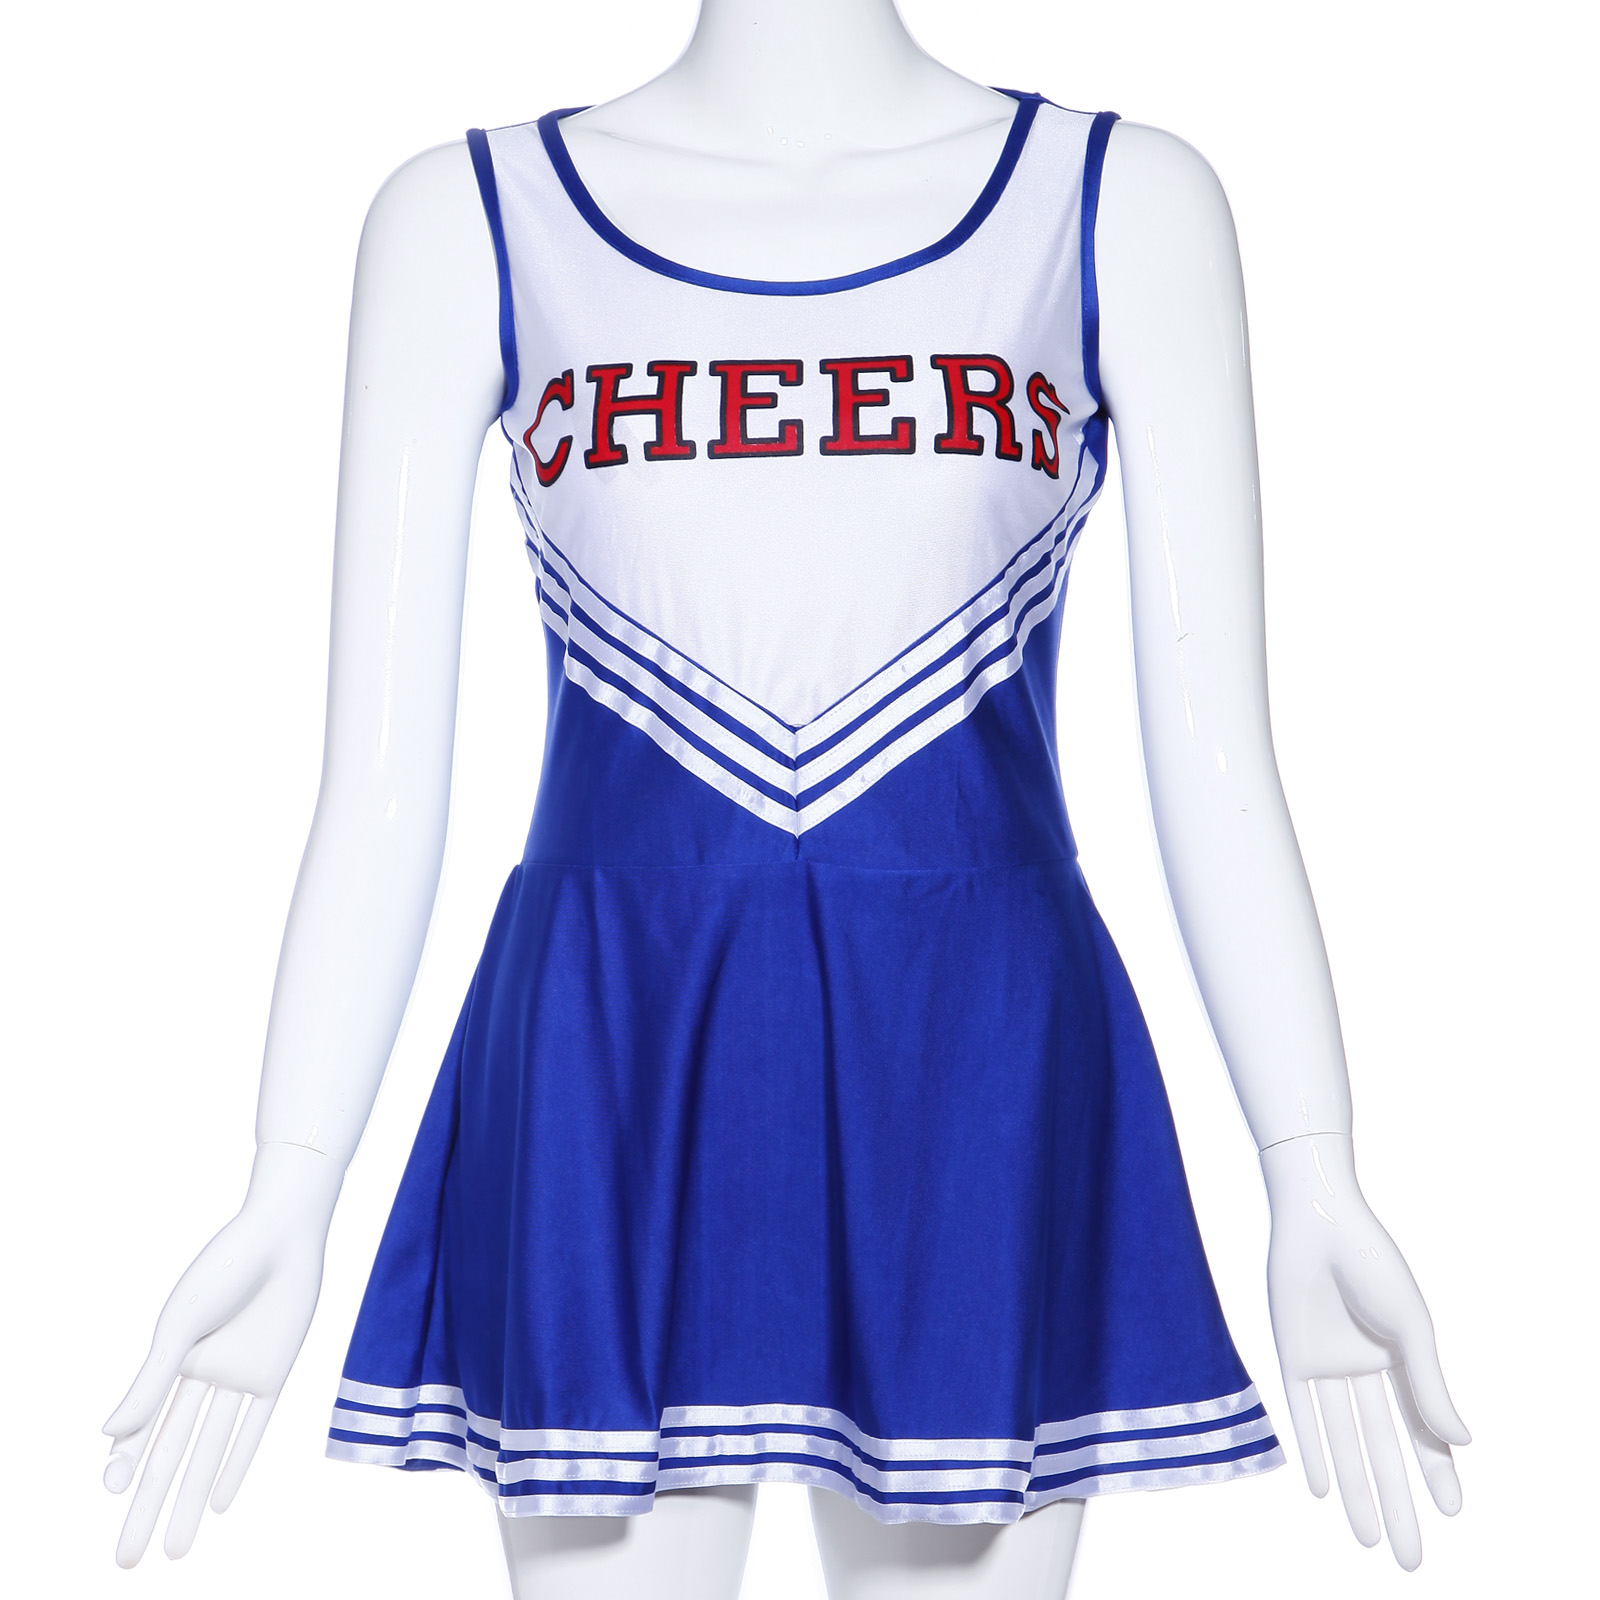 Snap Karneval Cheerleader Kostum Cheerleading Cheer Leader